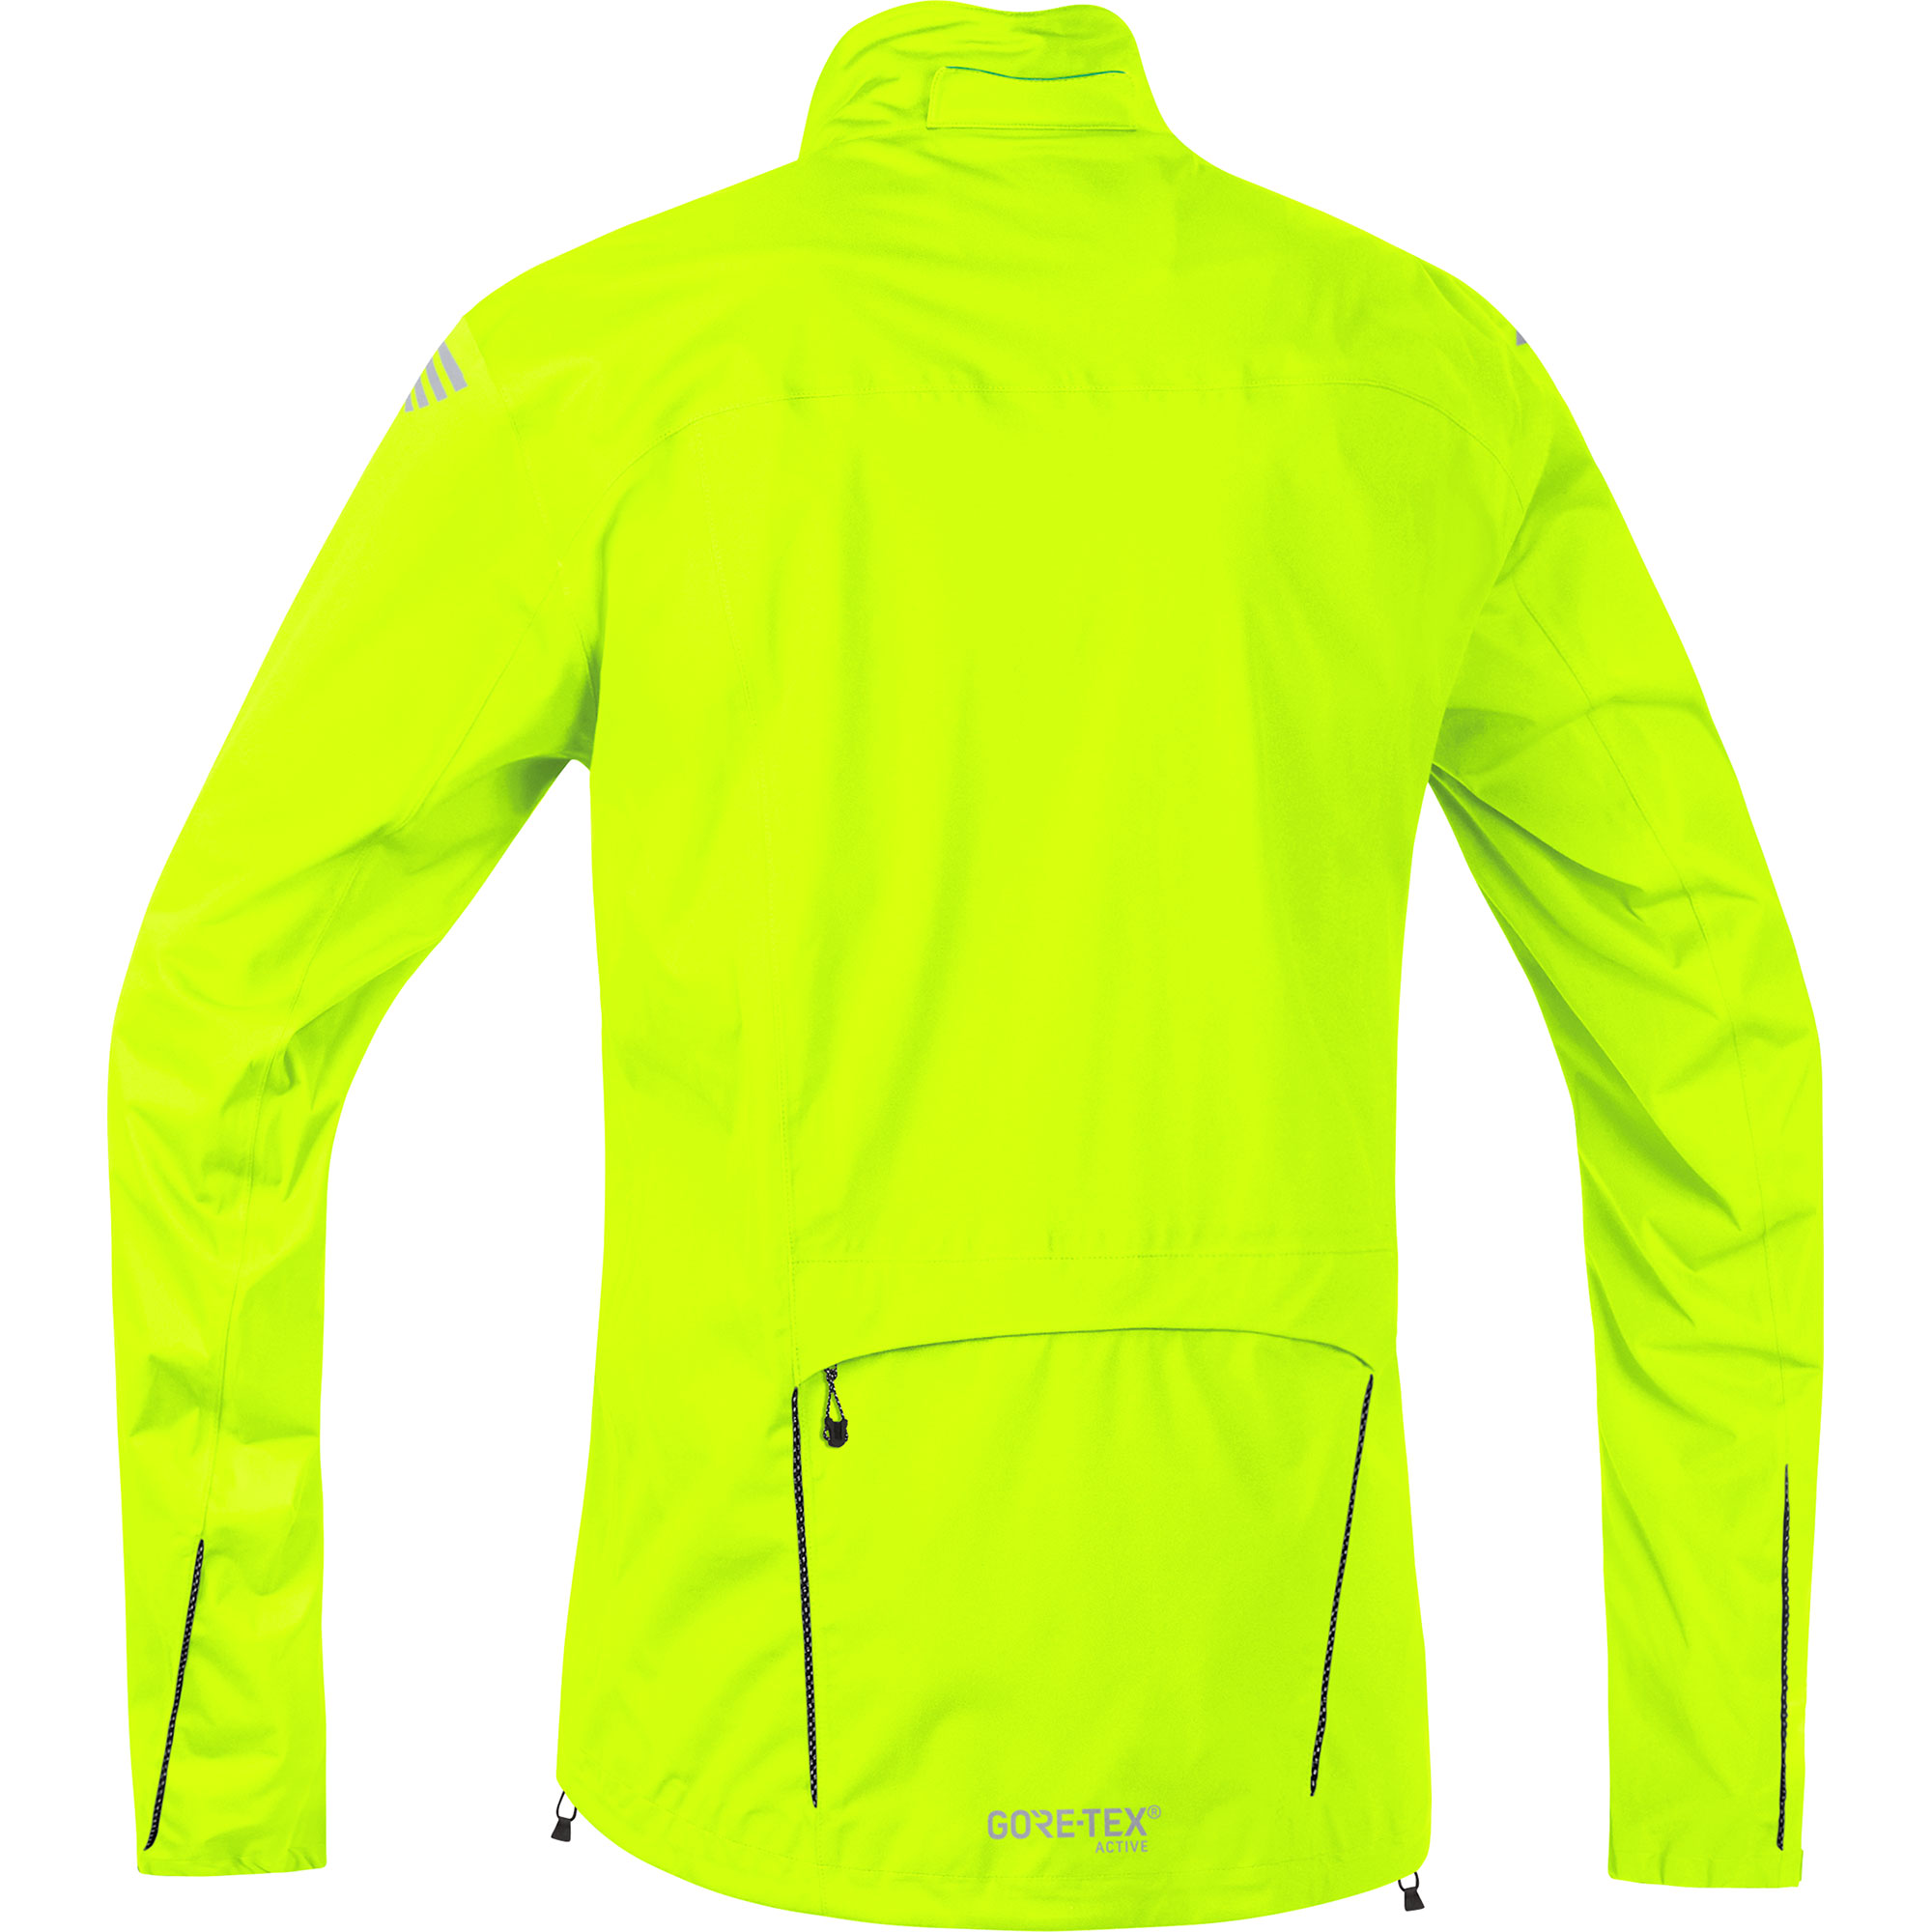 Tex Gore Active Jacket Element Gore Tex Active Jacket Element v8Pyn0wOmN